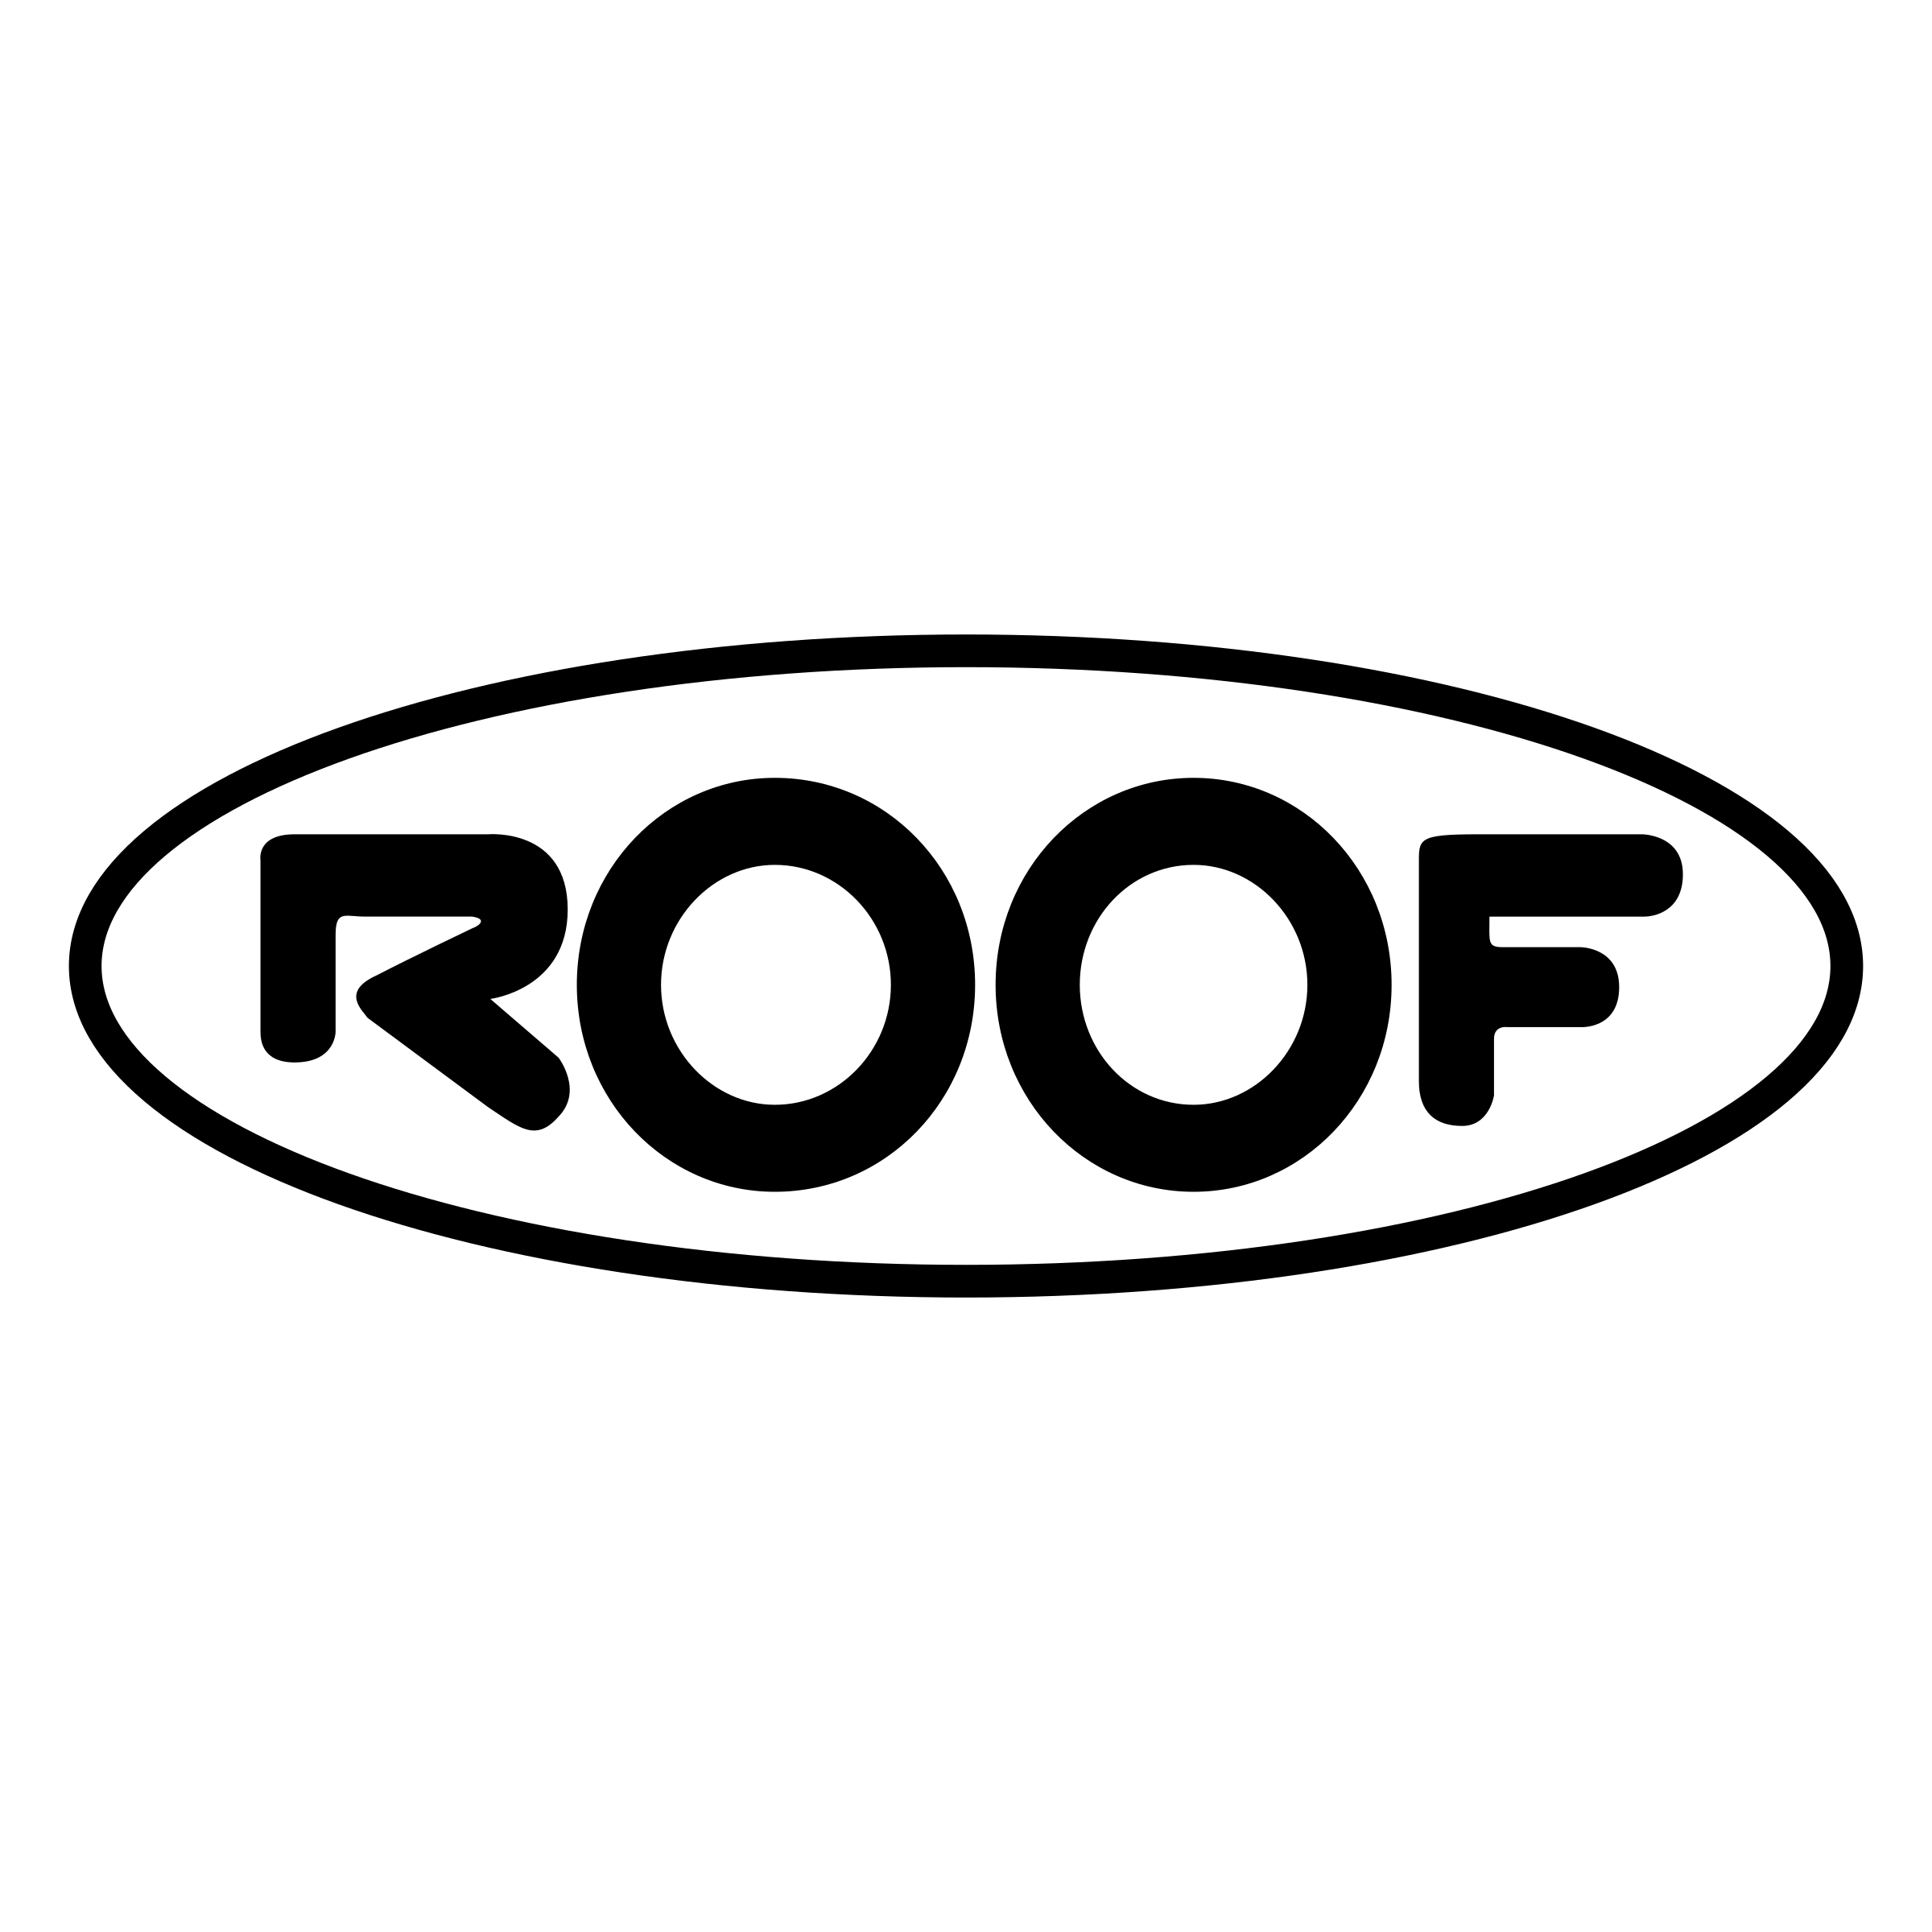 roof logos